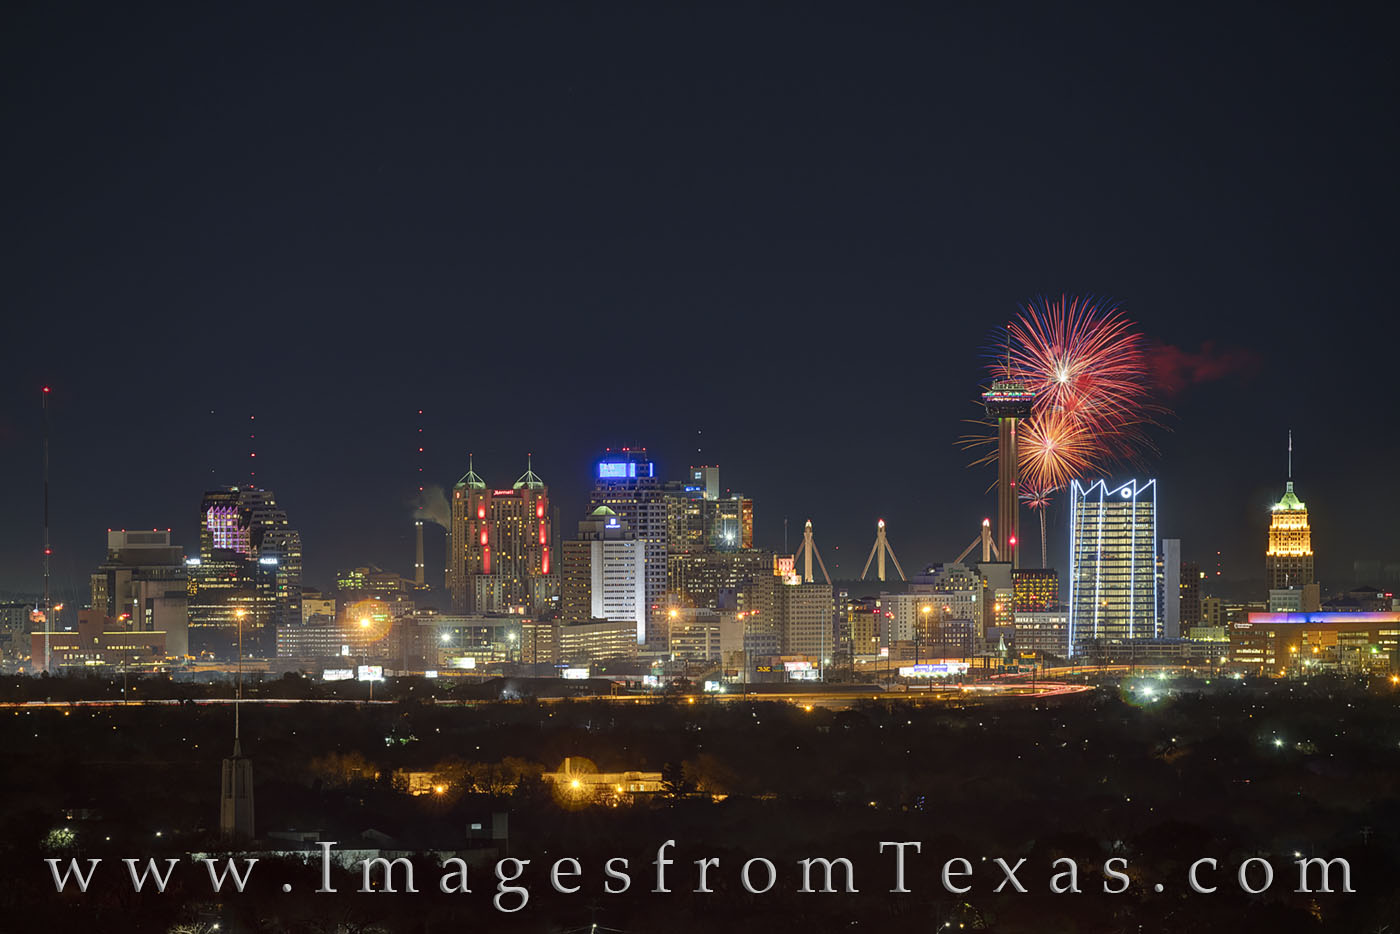 san antonio, skyline, frost tower, frost bank, tower of the americas, tower, night, high rises, texas skylines, winter, fireworks, new years eve, photo